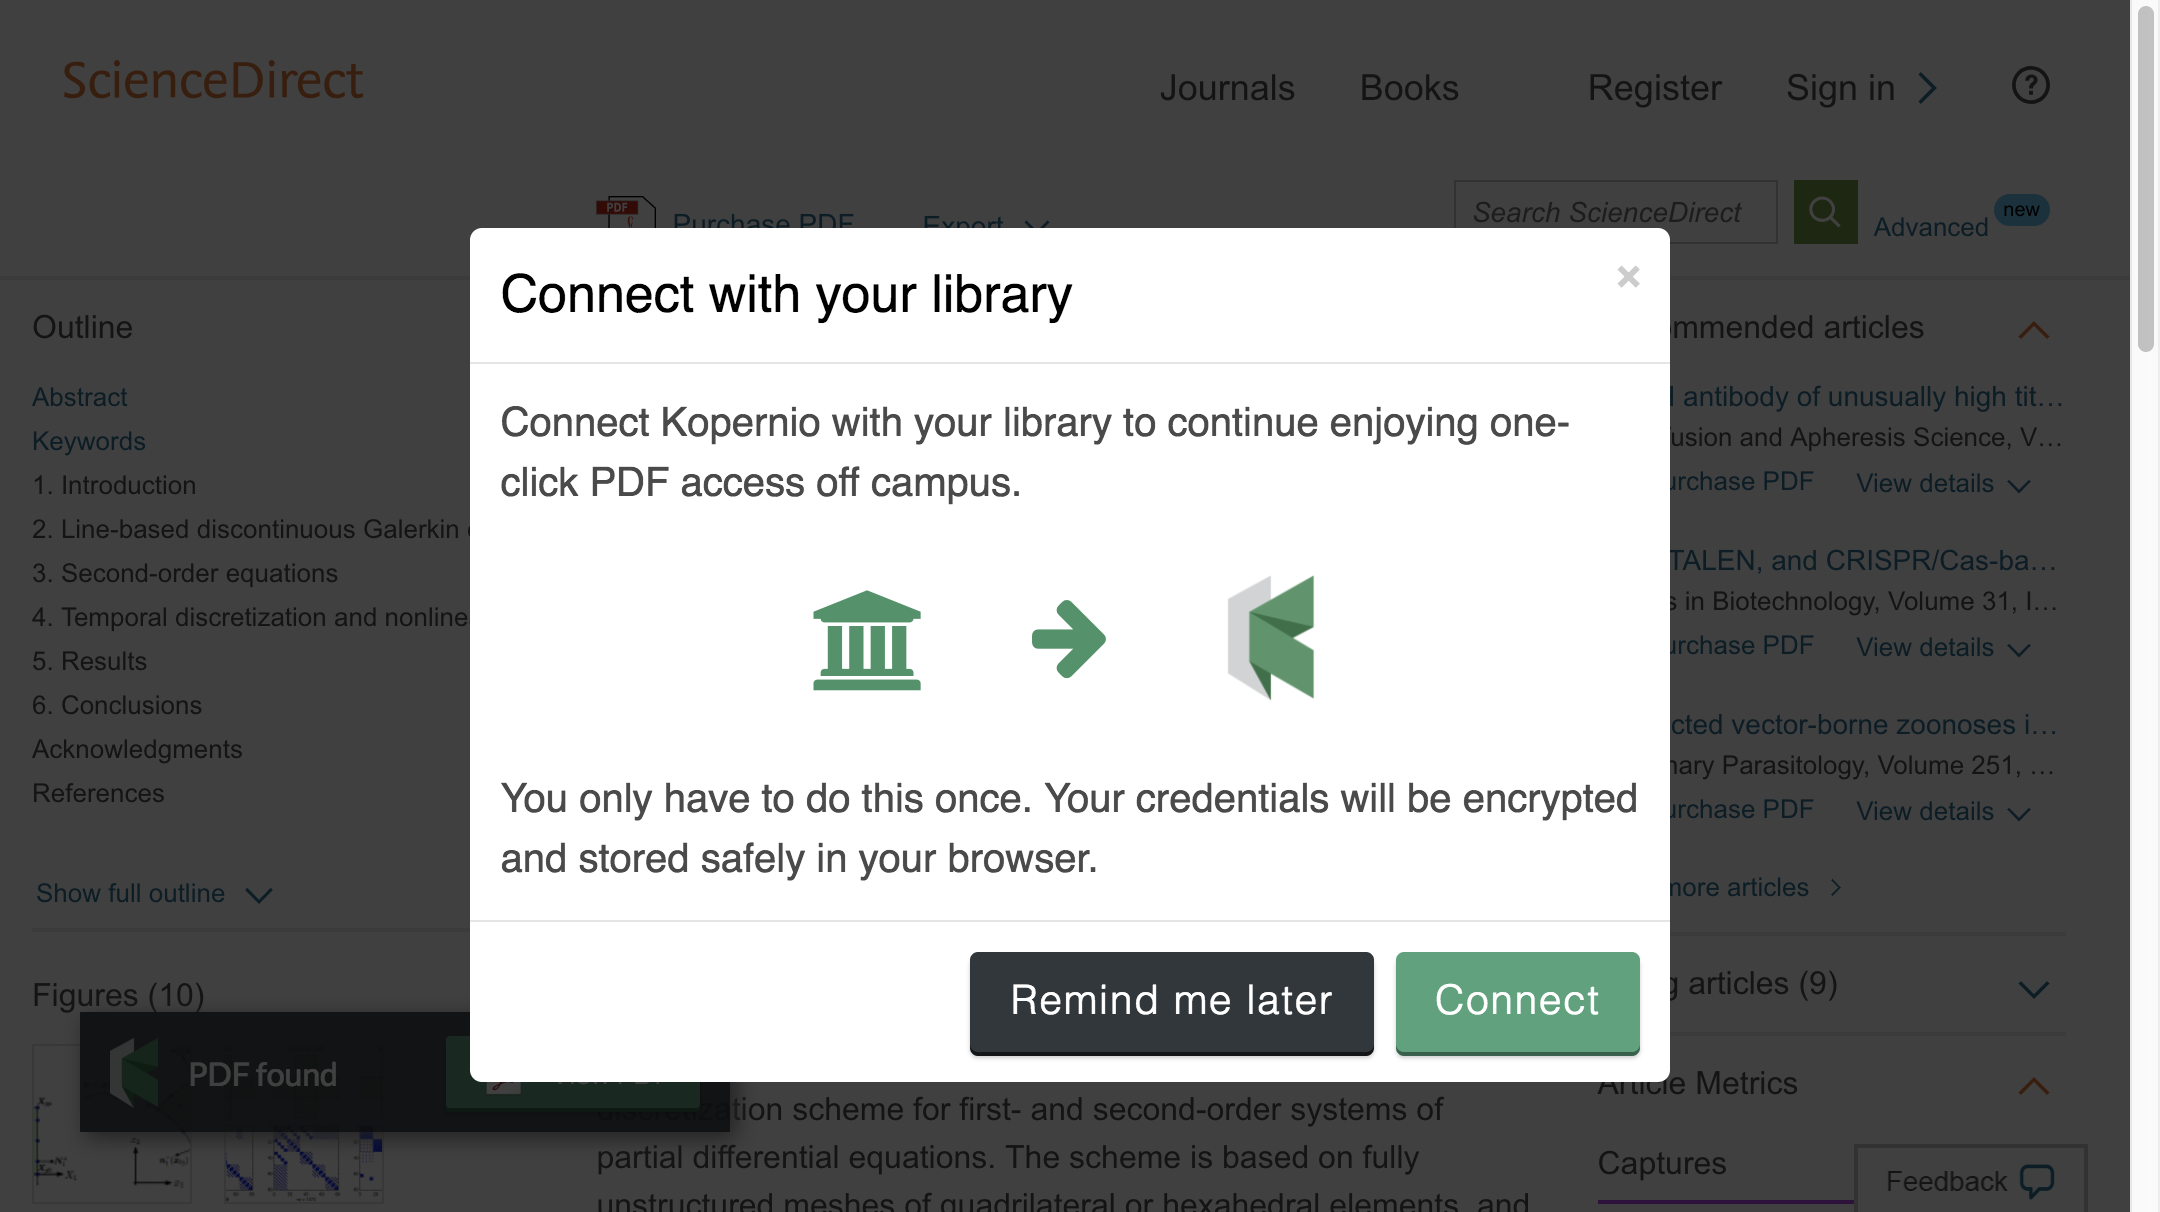 Connect to library prompt for off-campus access to Southern Illinois University System e-resources.